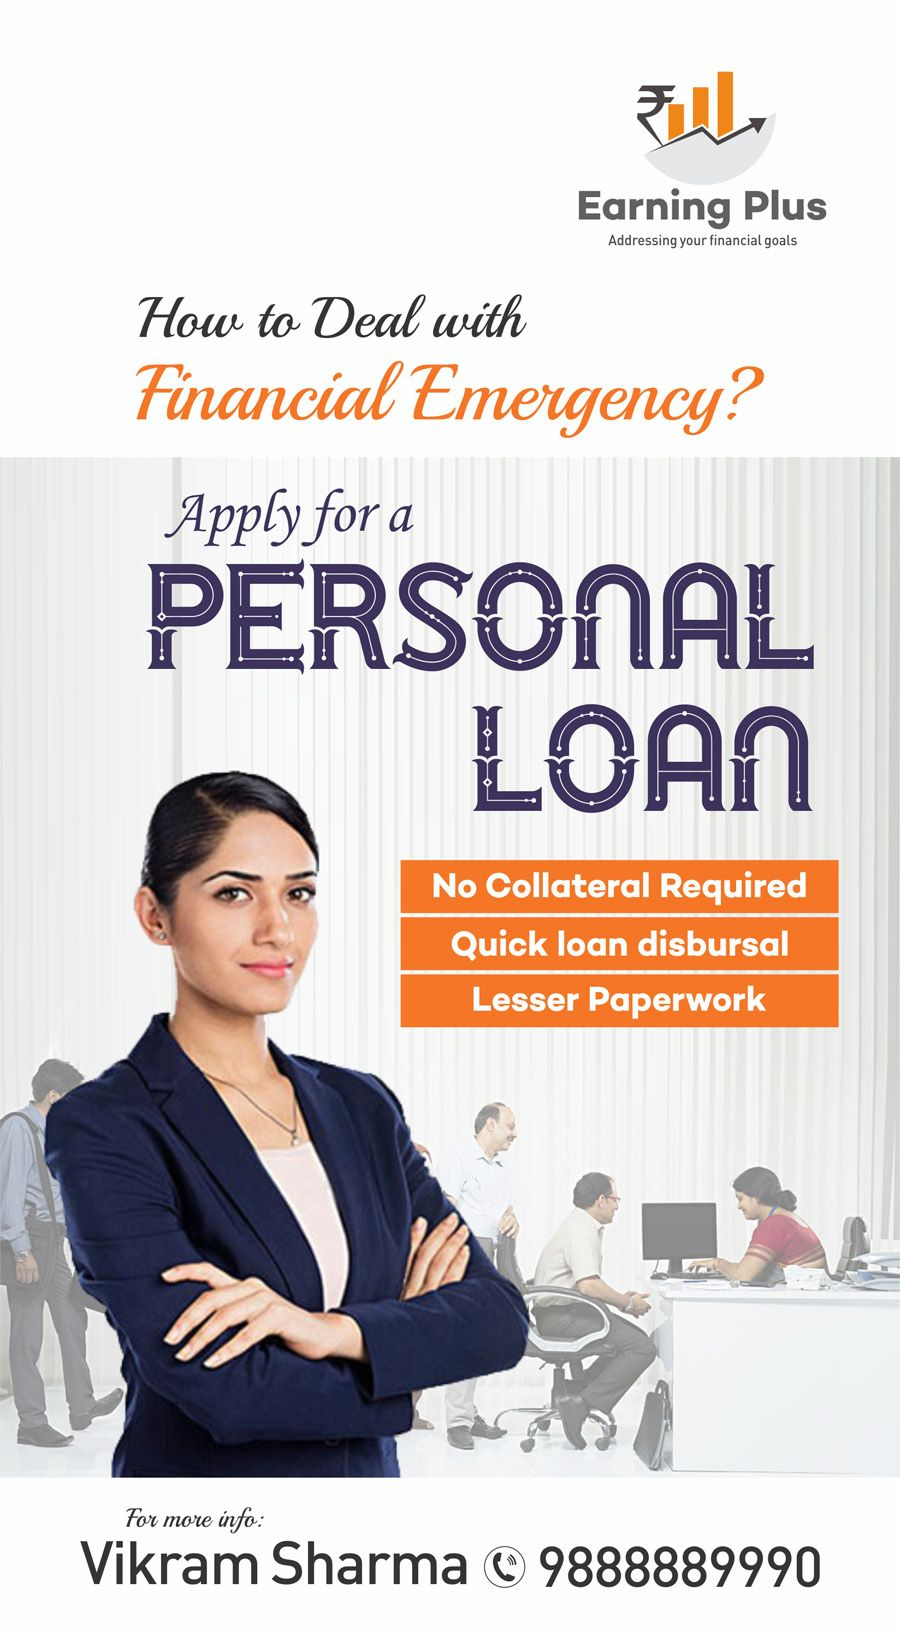 Want To Apply For A Personal Loan Personal Loans Personal Loans Online How To Apply